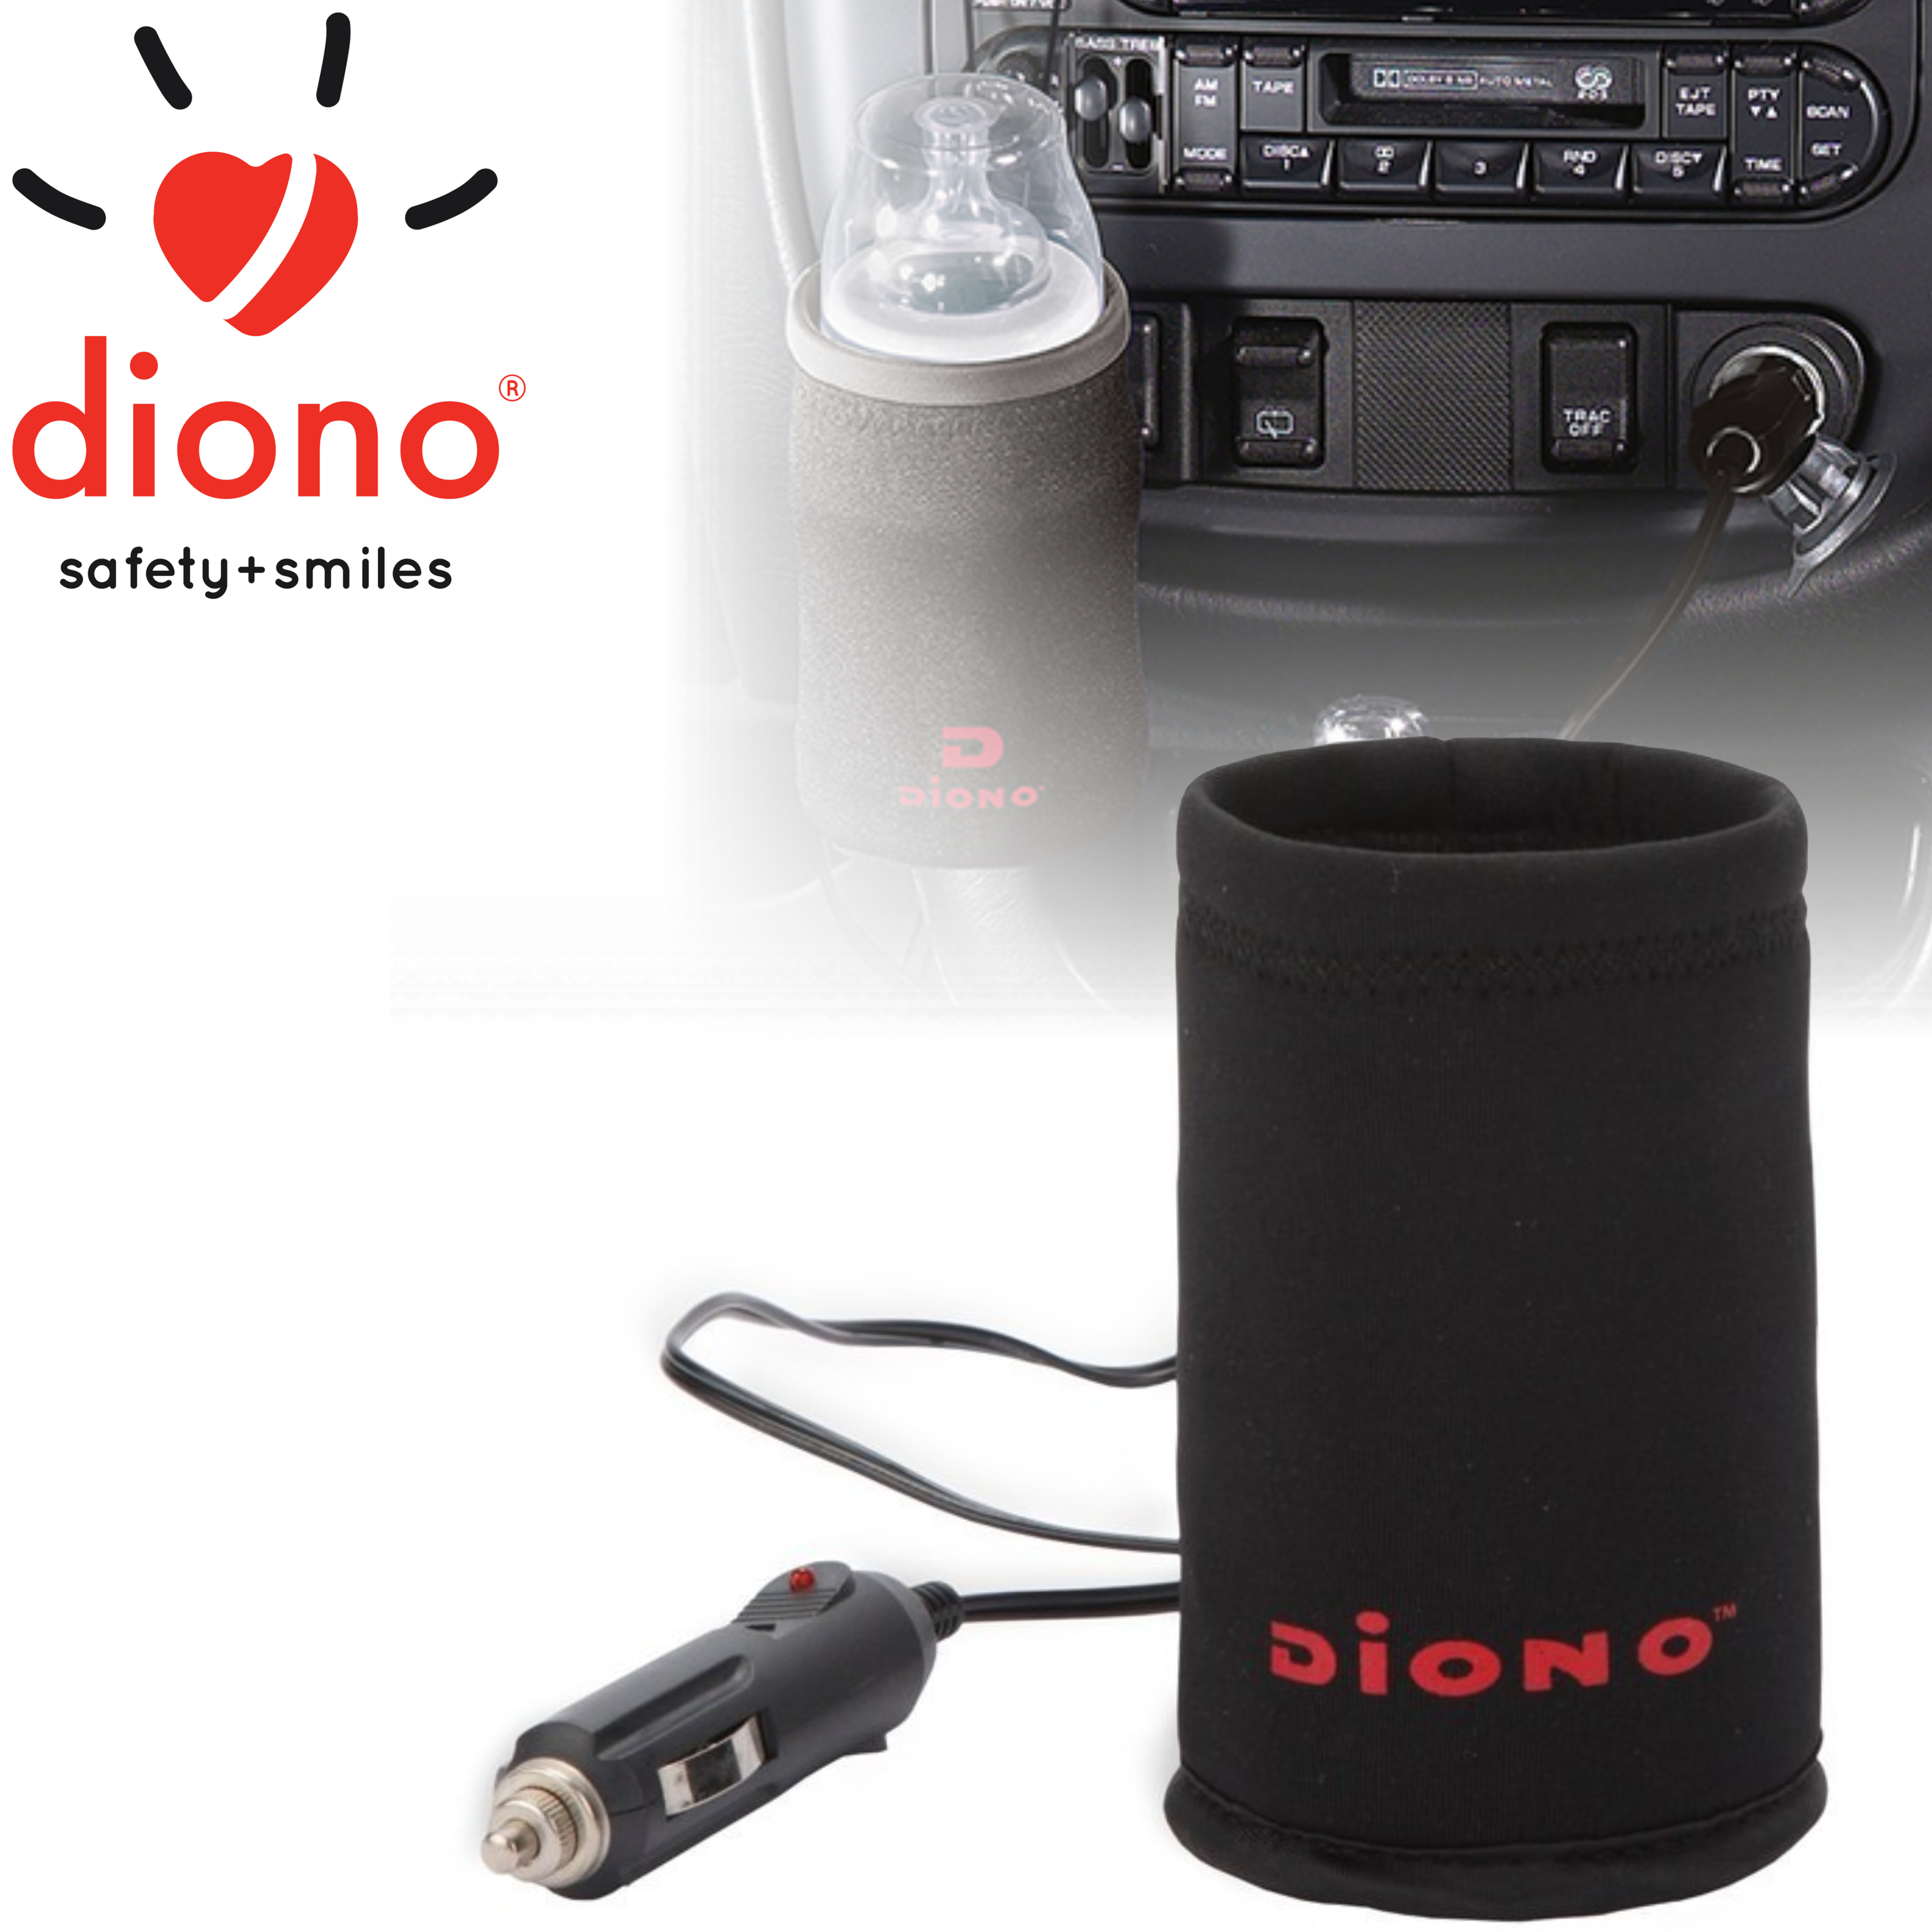 Diono Warm 'n Go Deluxe Plug-In Car Insulated Travel Bottle Warmer For Baby/Kids